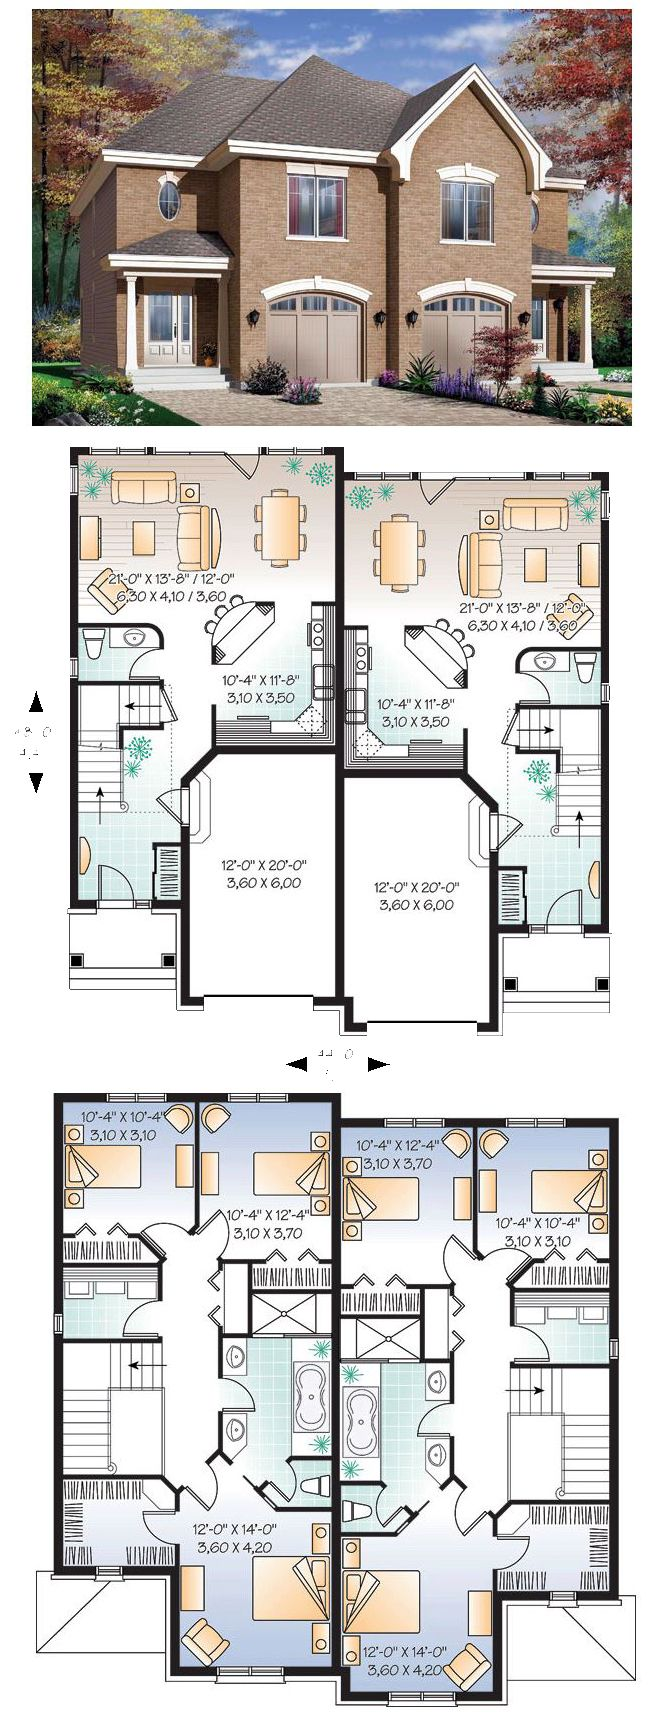 Small multi family house plans for Familyhomeplans 75137